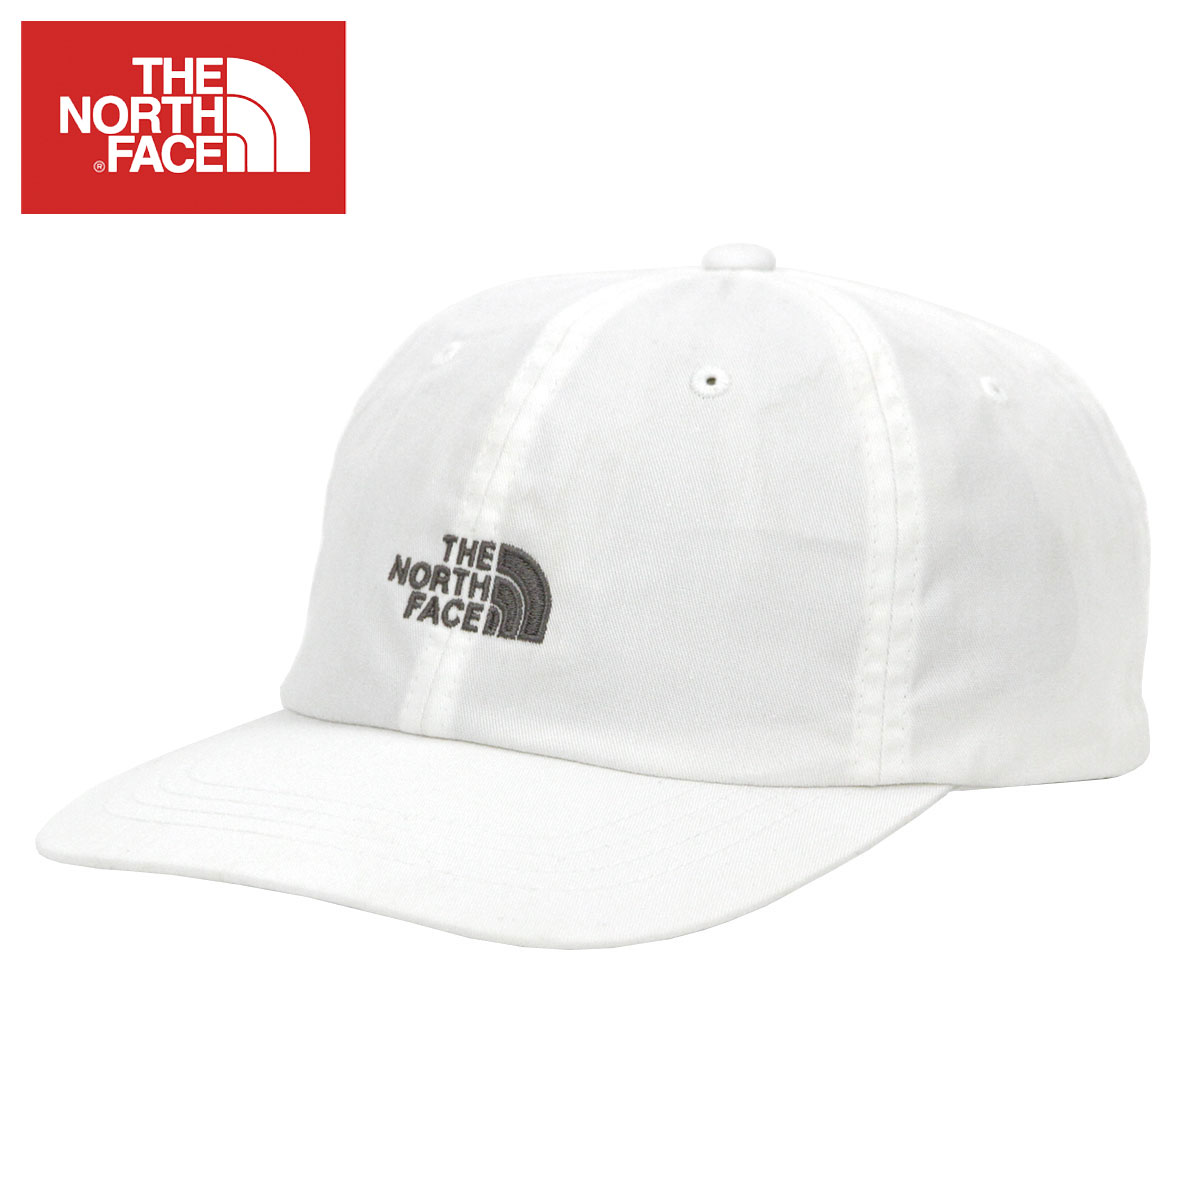 2609526a9 North Face THE NORTH FACE regular article men gap Dis cap hat THE NORTH THE  FACE NORM HAT TNF WHITE